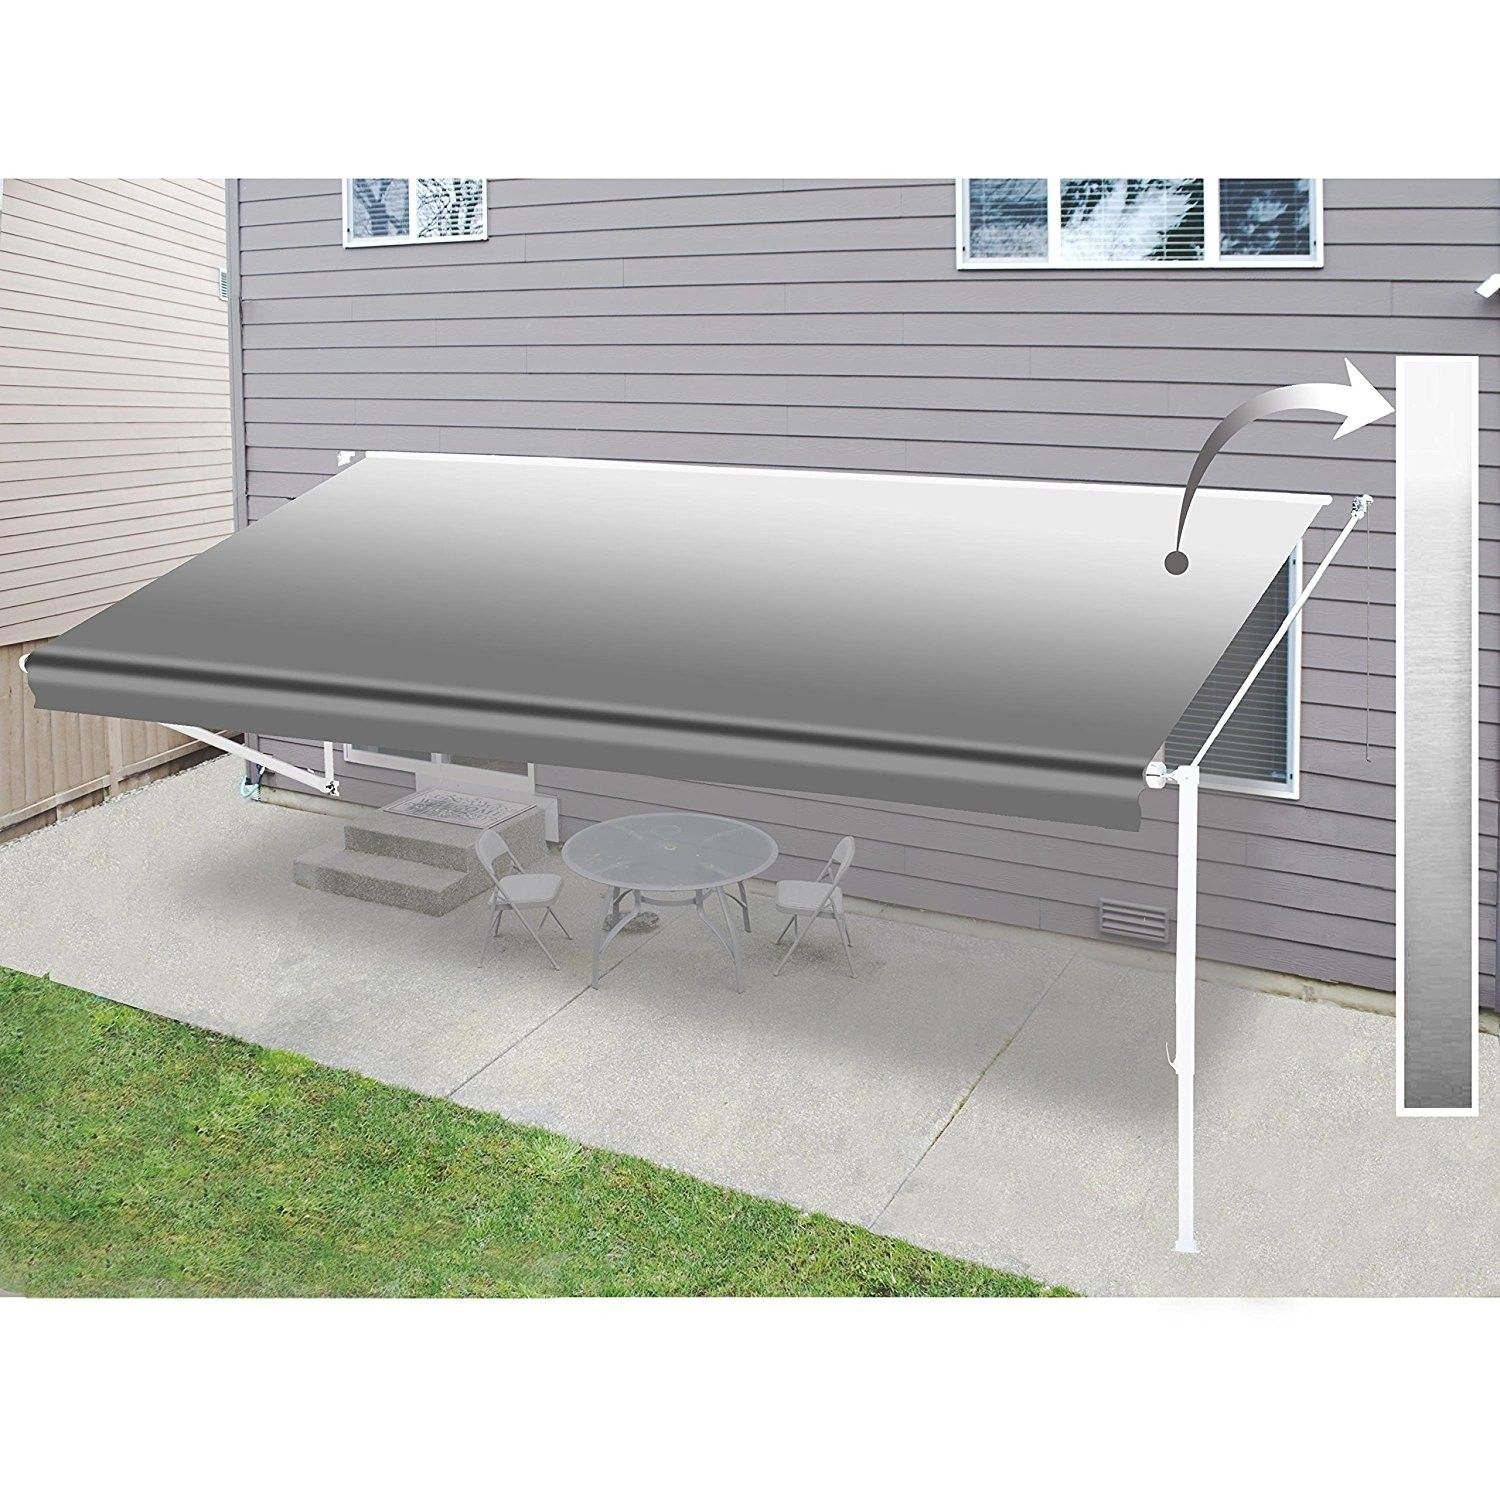 12 Ft W X 10 Ft D Plastic Retractable Standard Patio Awning Patio Canopy Retractable Awning Patio Swing